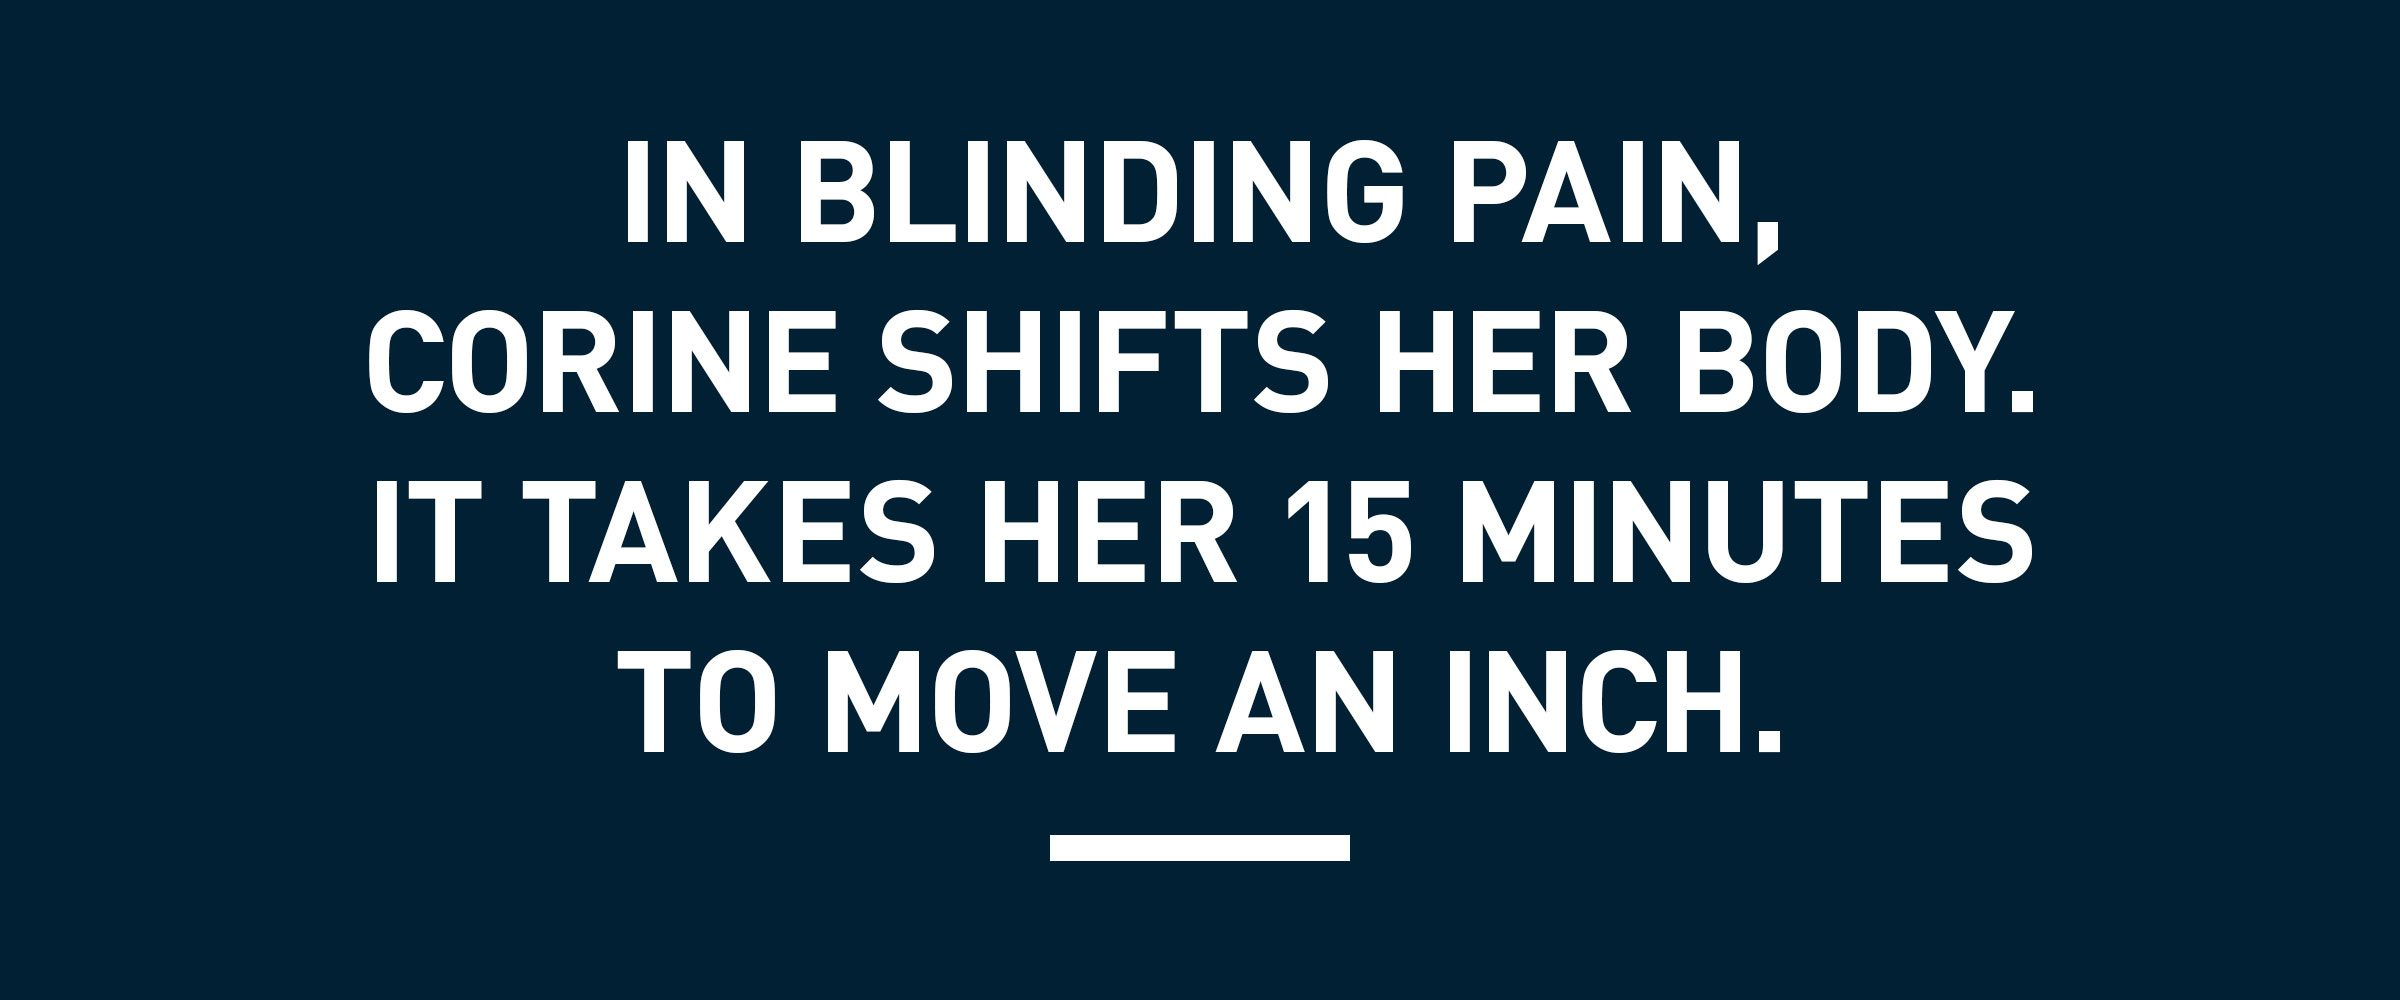 text: In blinding pain, Corine shifts her body. It takes her 15 minutes to move an inch.